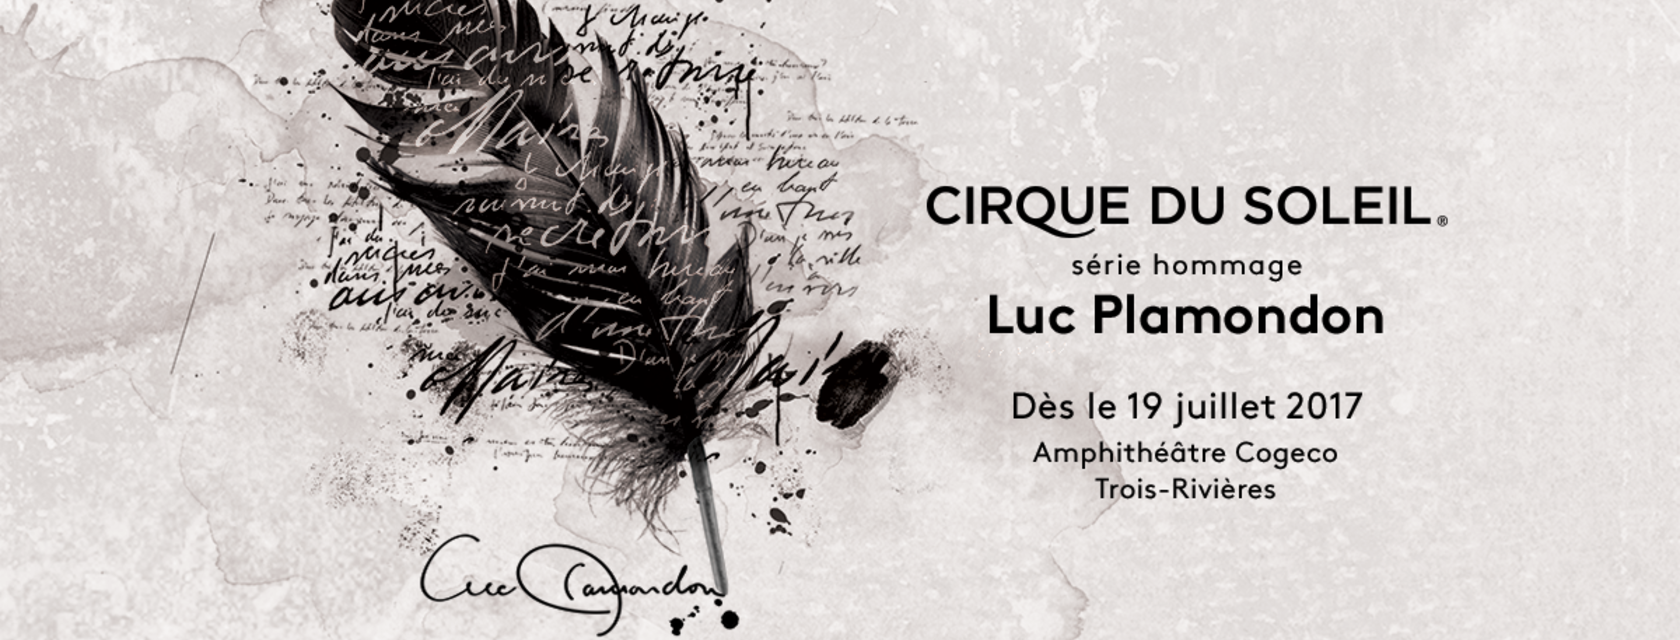 A third year for the Cirque du Soleil Tribute Series inspired by one of Quebec's greatest lyricists